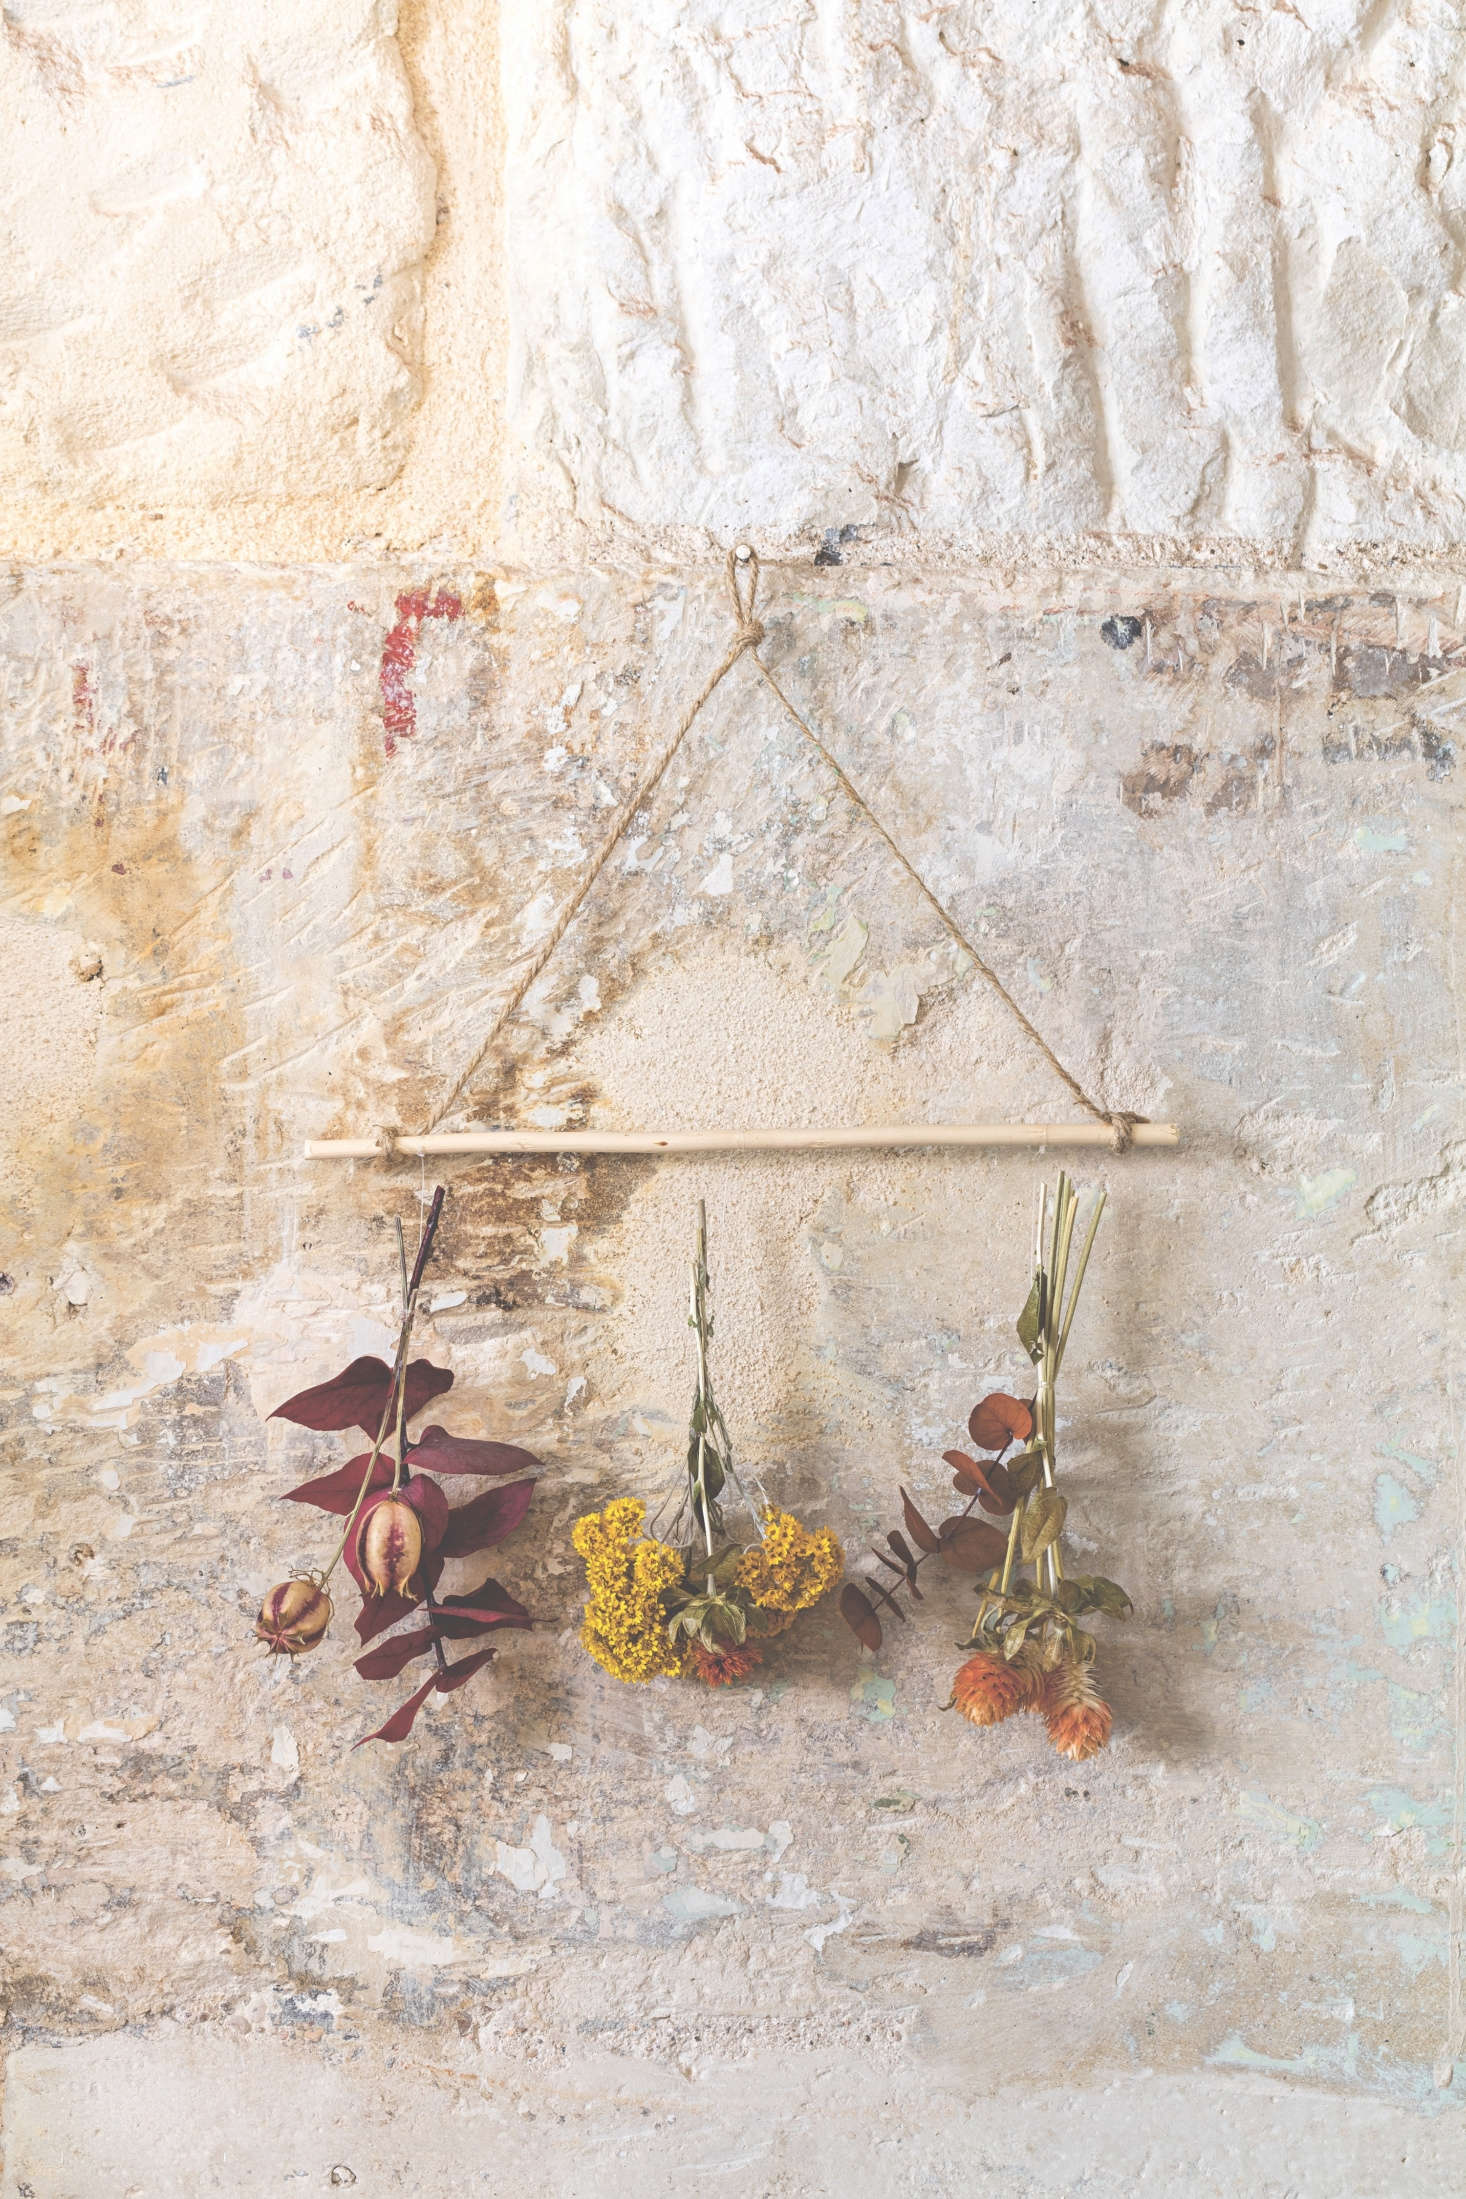 The book also shows us how to capture some of spring and summer's color-rich flowers to enjoy year round by hanging small bunches onto a simple wooden rod as a wall hanging.